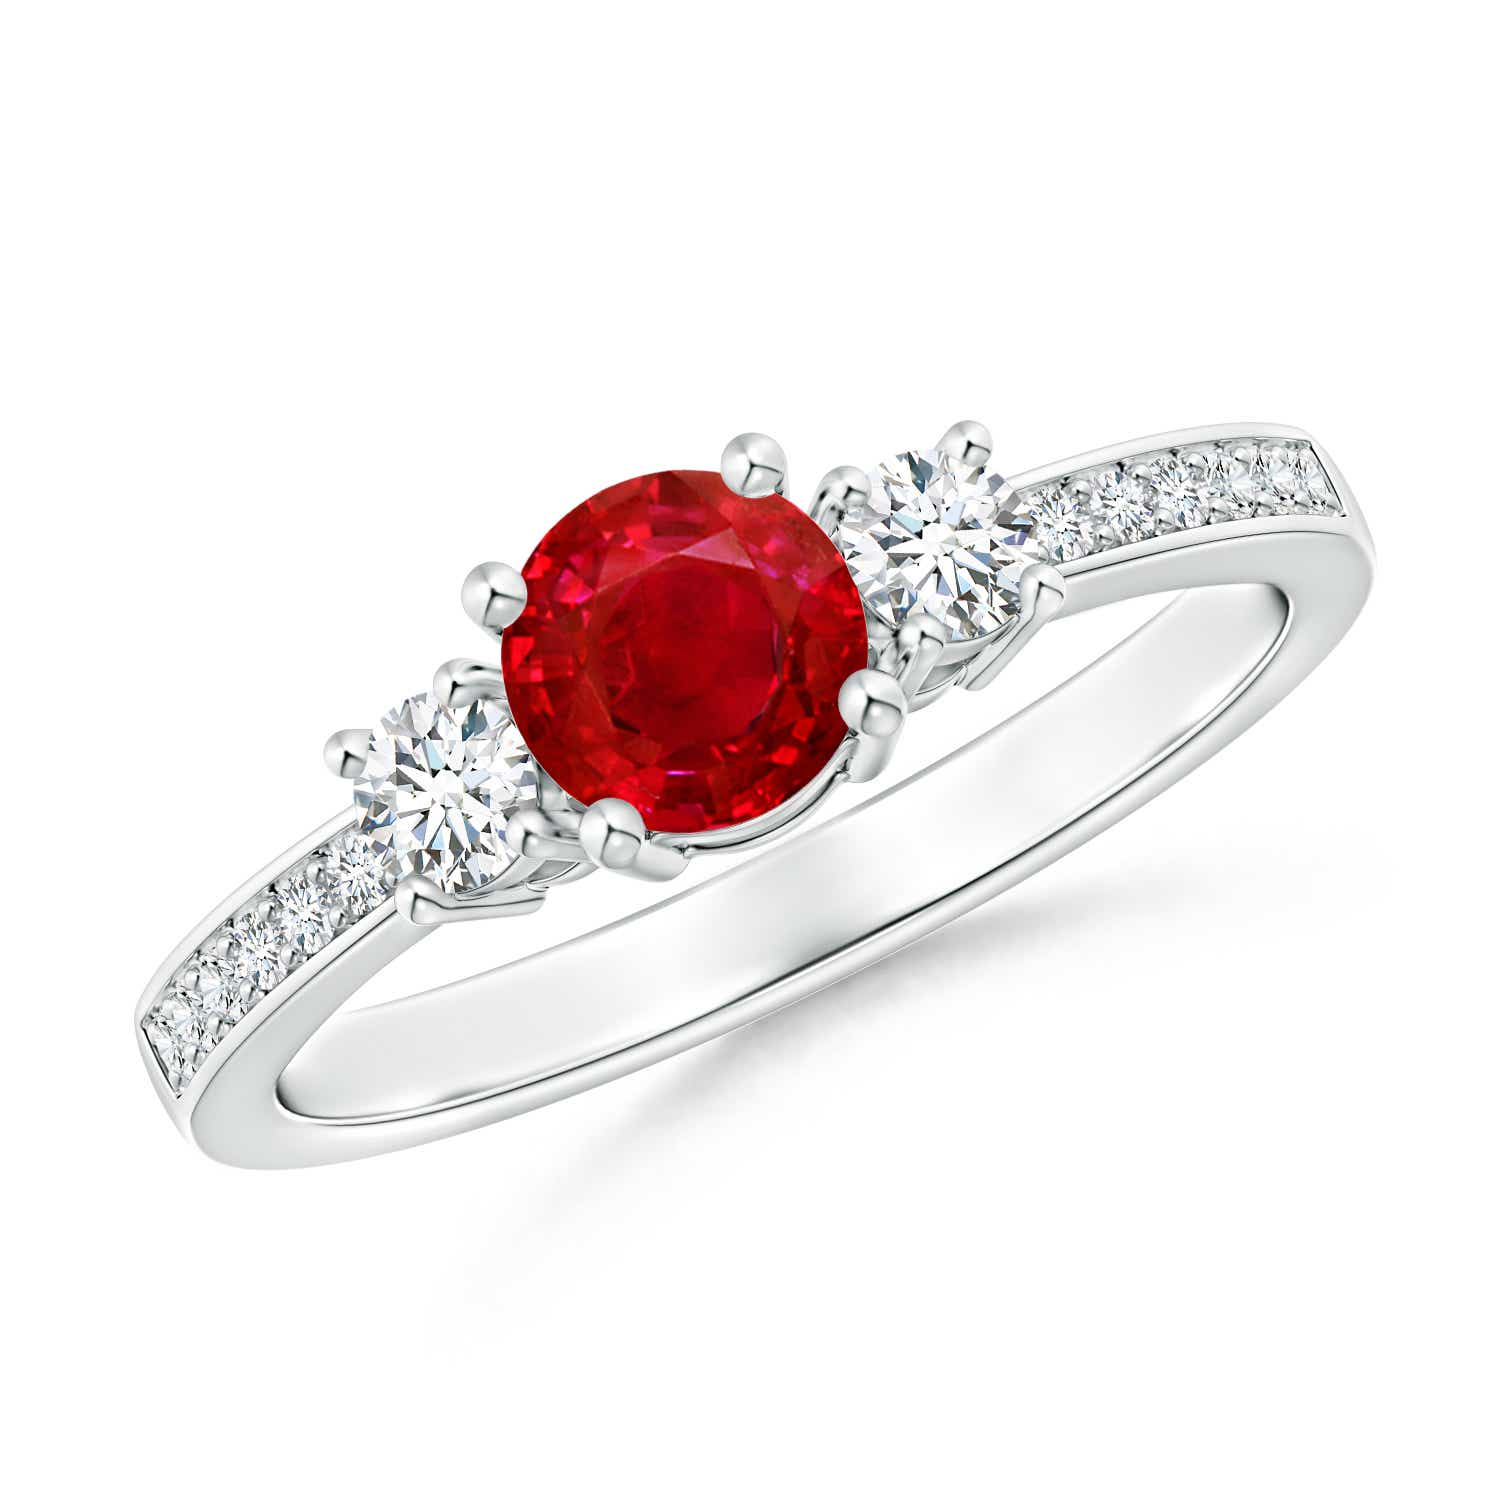 Angara Classic Diamond Halo Ruby Engagement Ring in 14k Yellow Gold gabPb